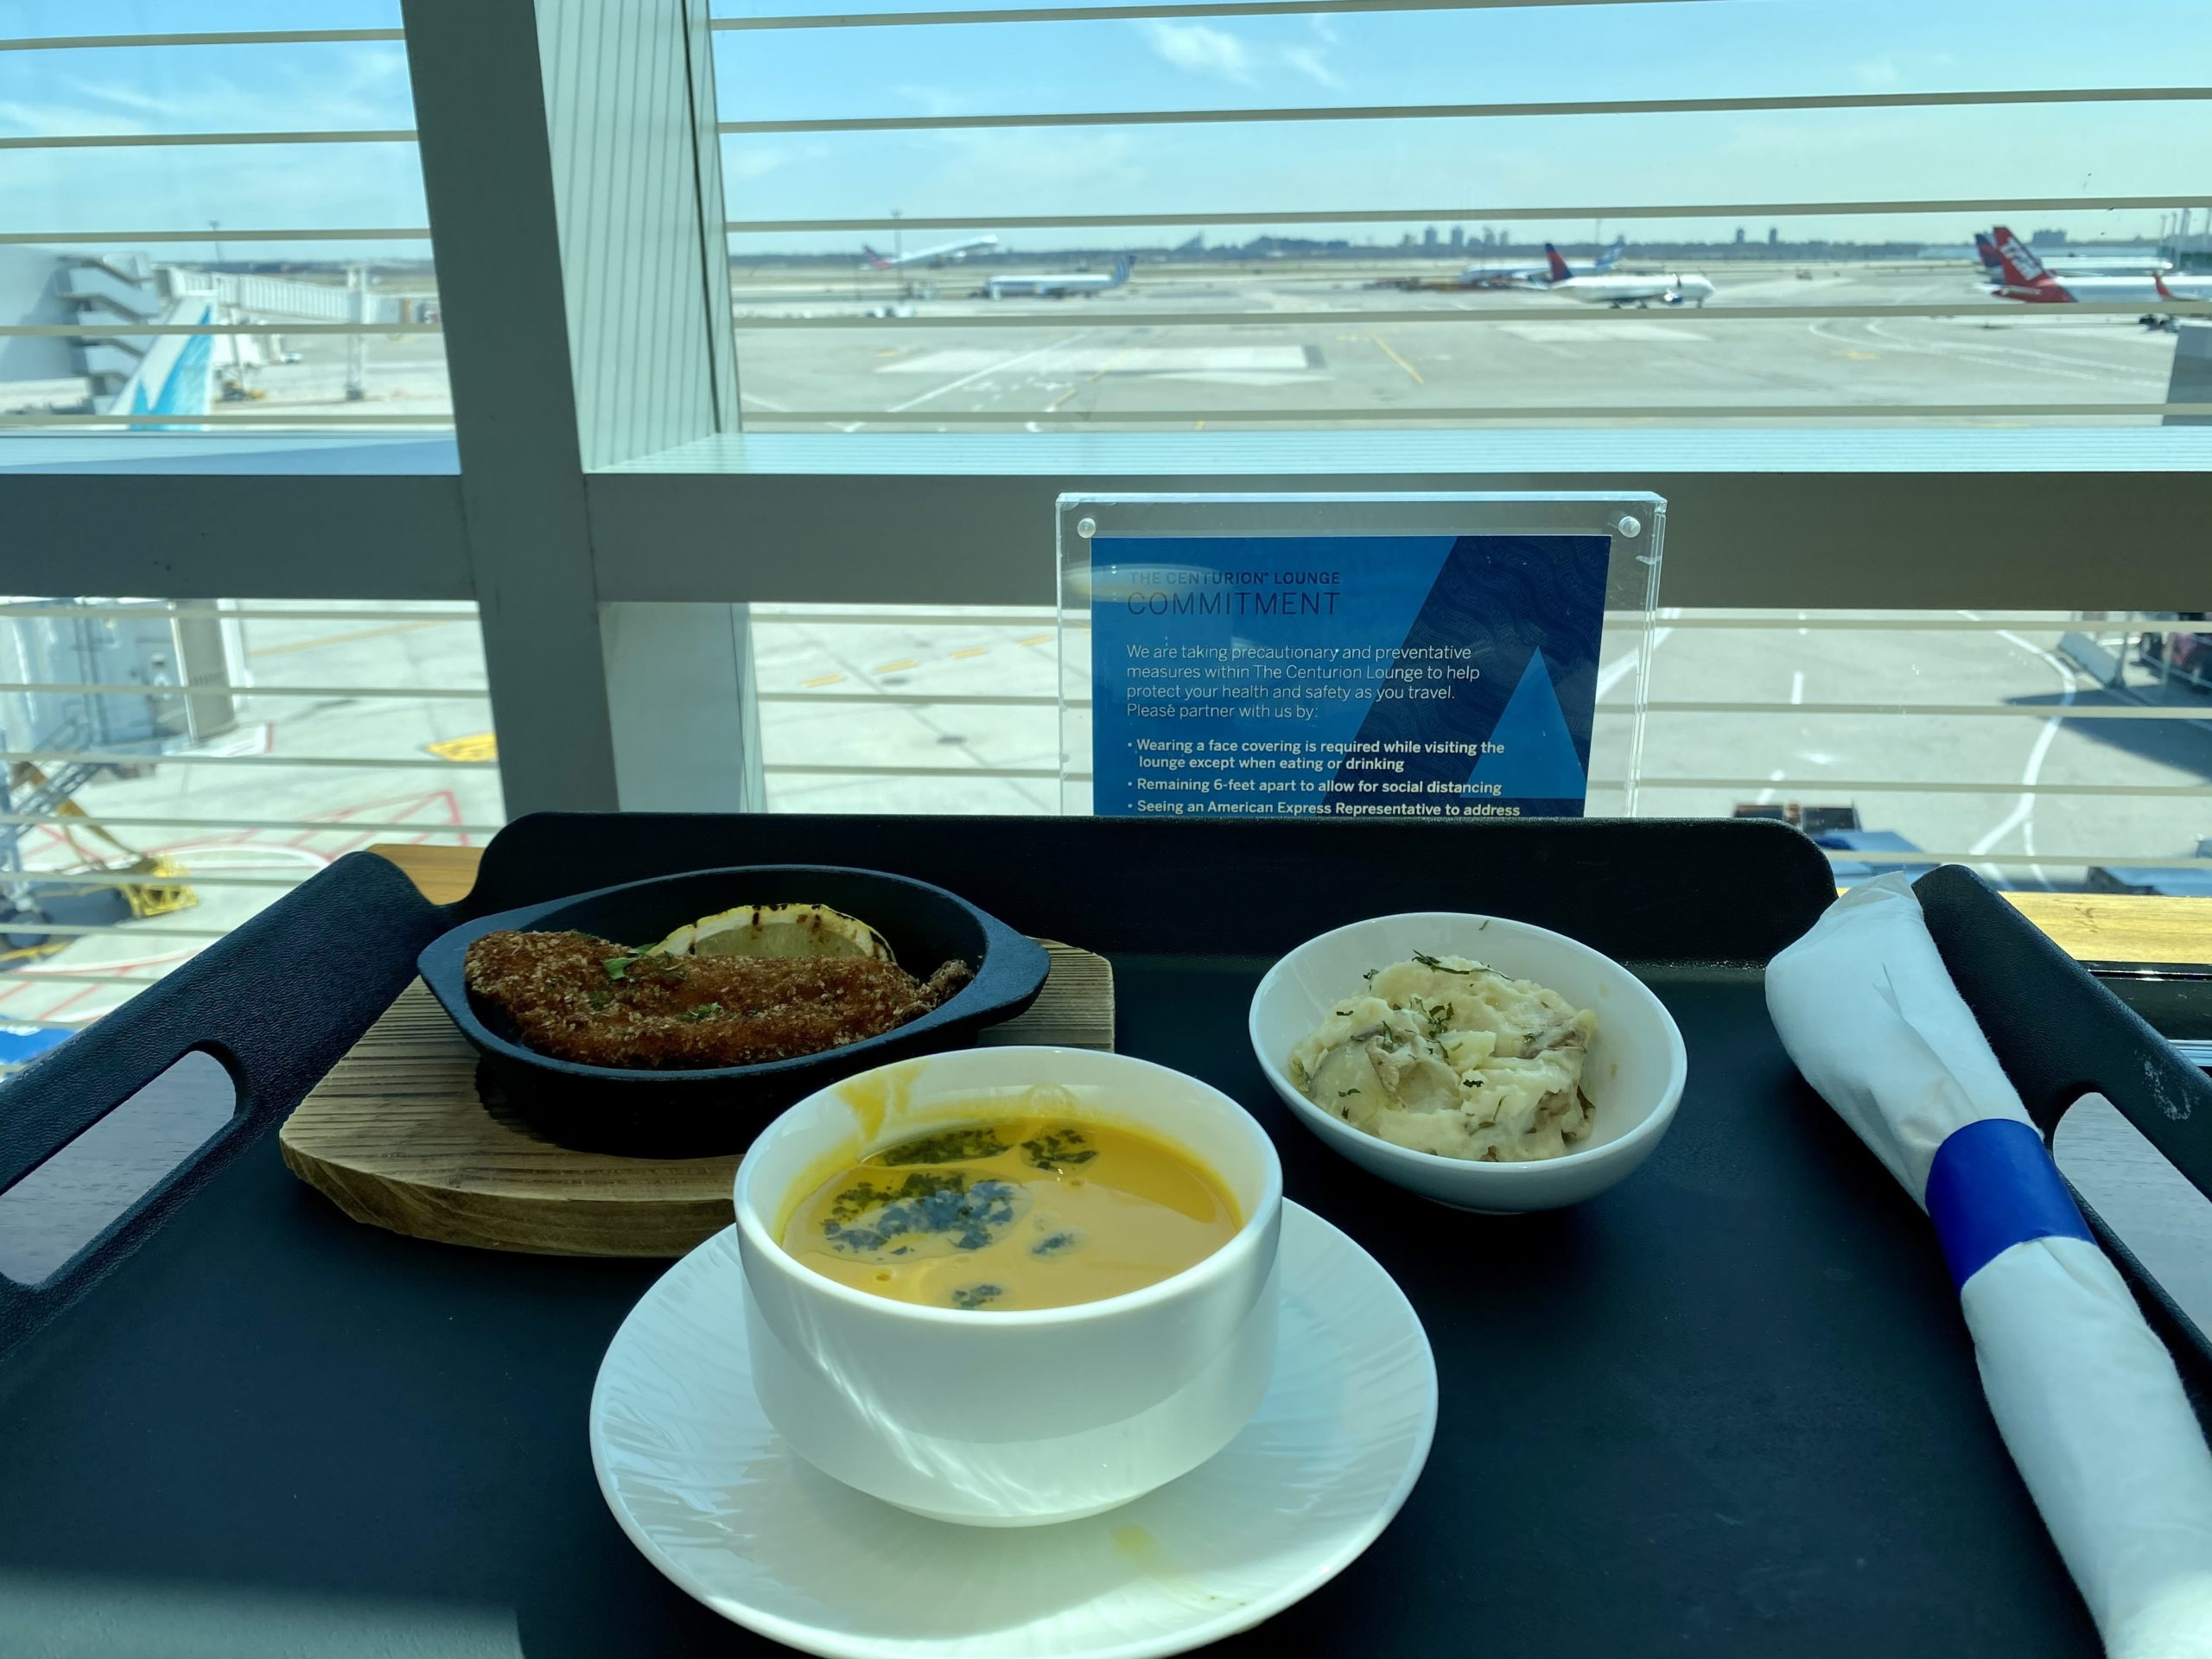 JFK Centurion Lounge food